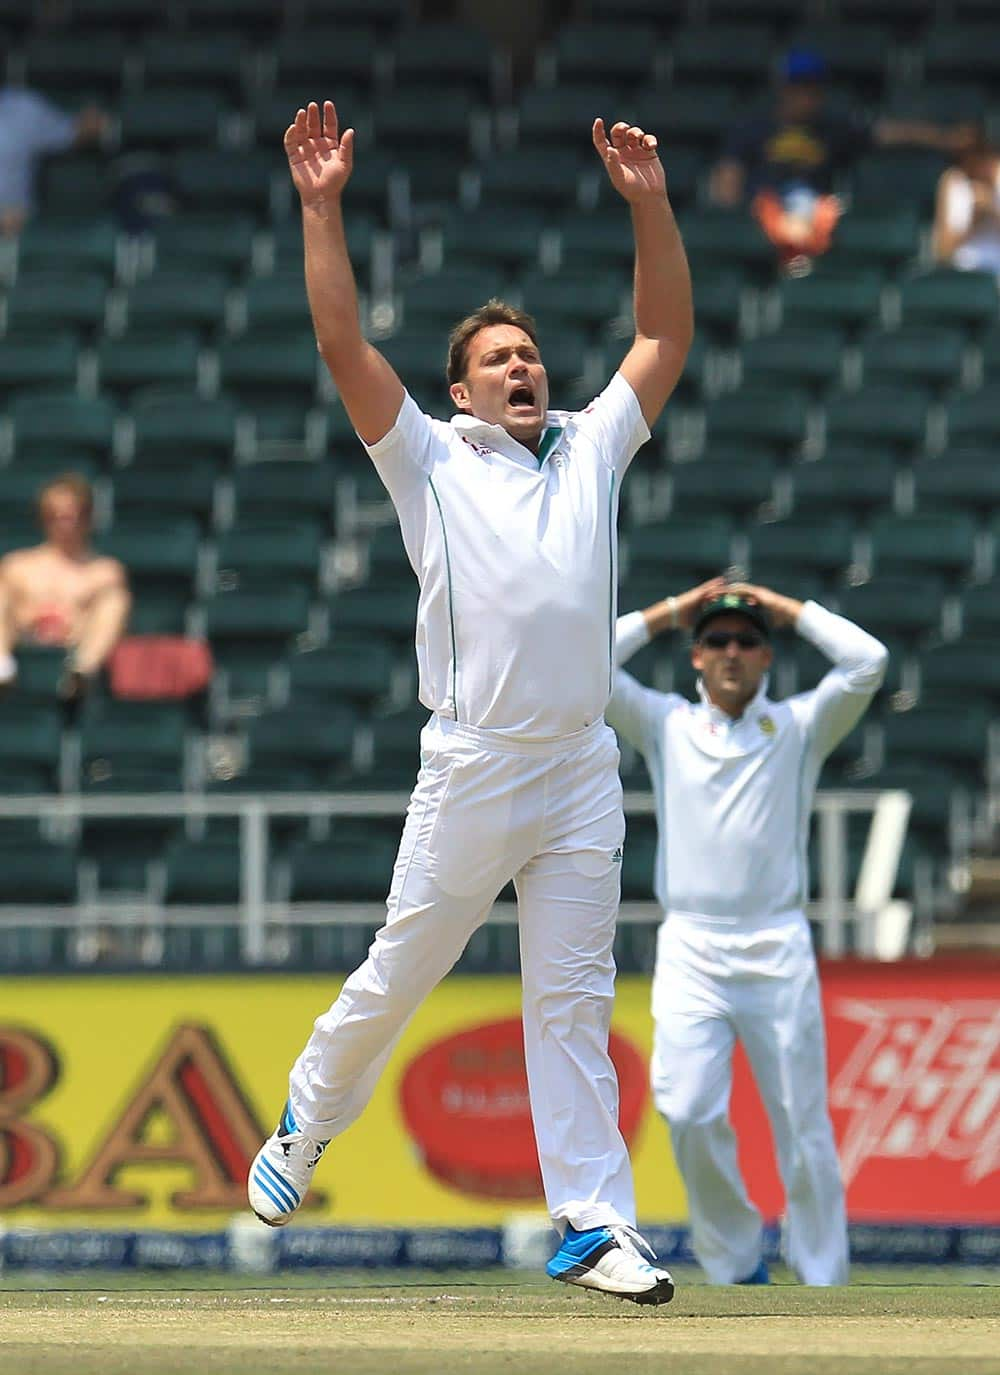 South Africa's bowler Jacques Kallis, appeals unsuccessful for LBW against India's batsman Murali Vijay, during India's 2nd innings on the third day of their cricket test match at Wanderers stadium in Johannesburg,